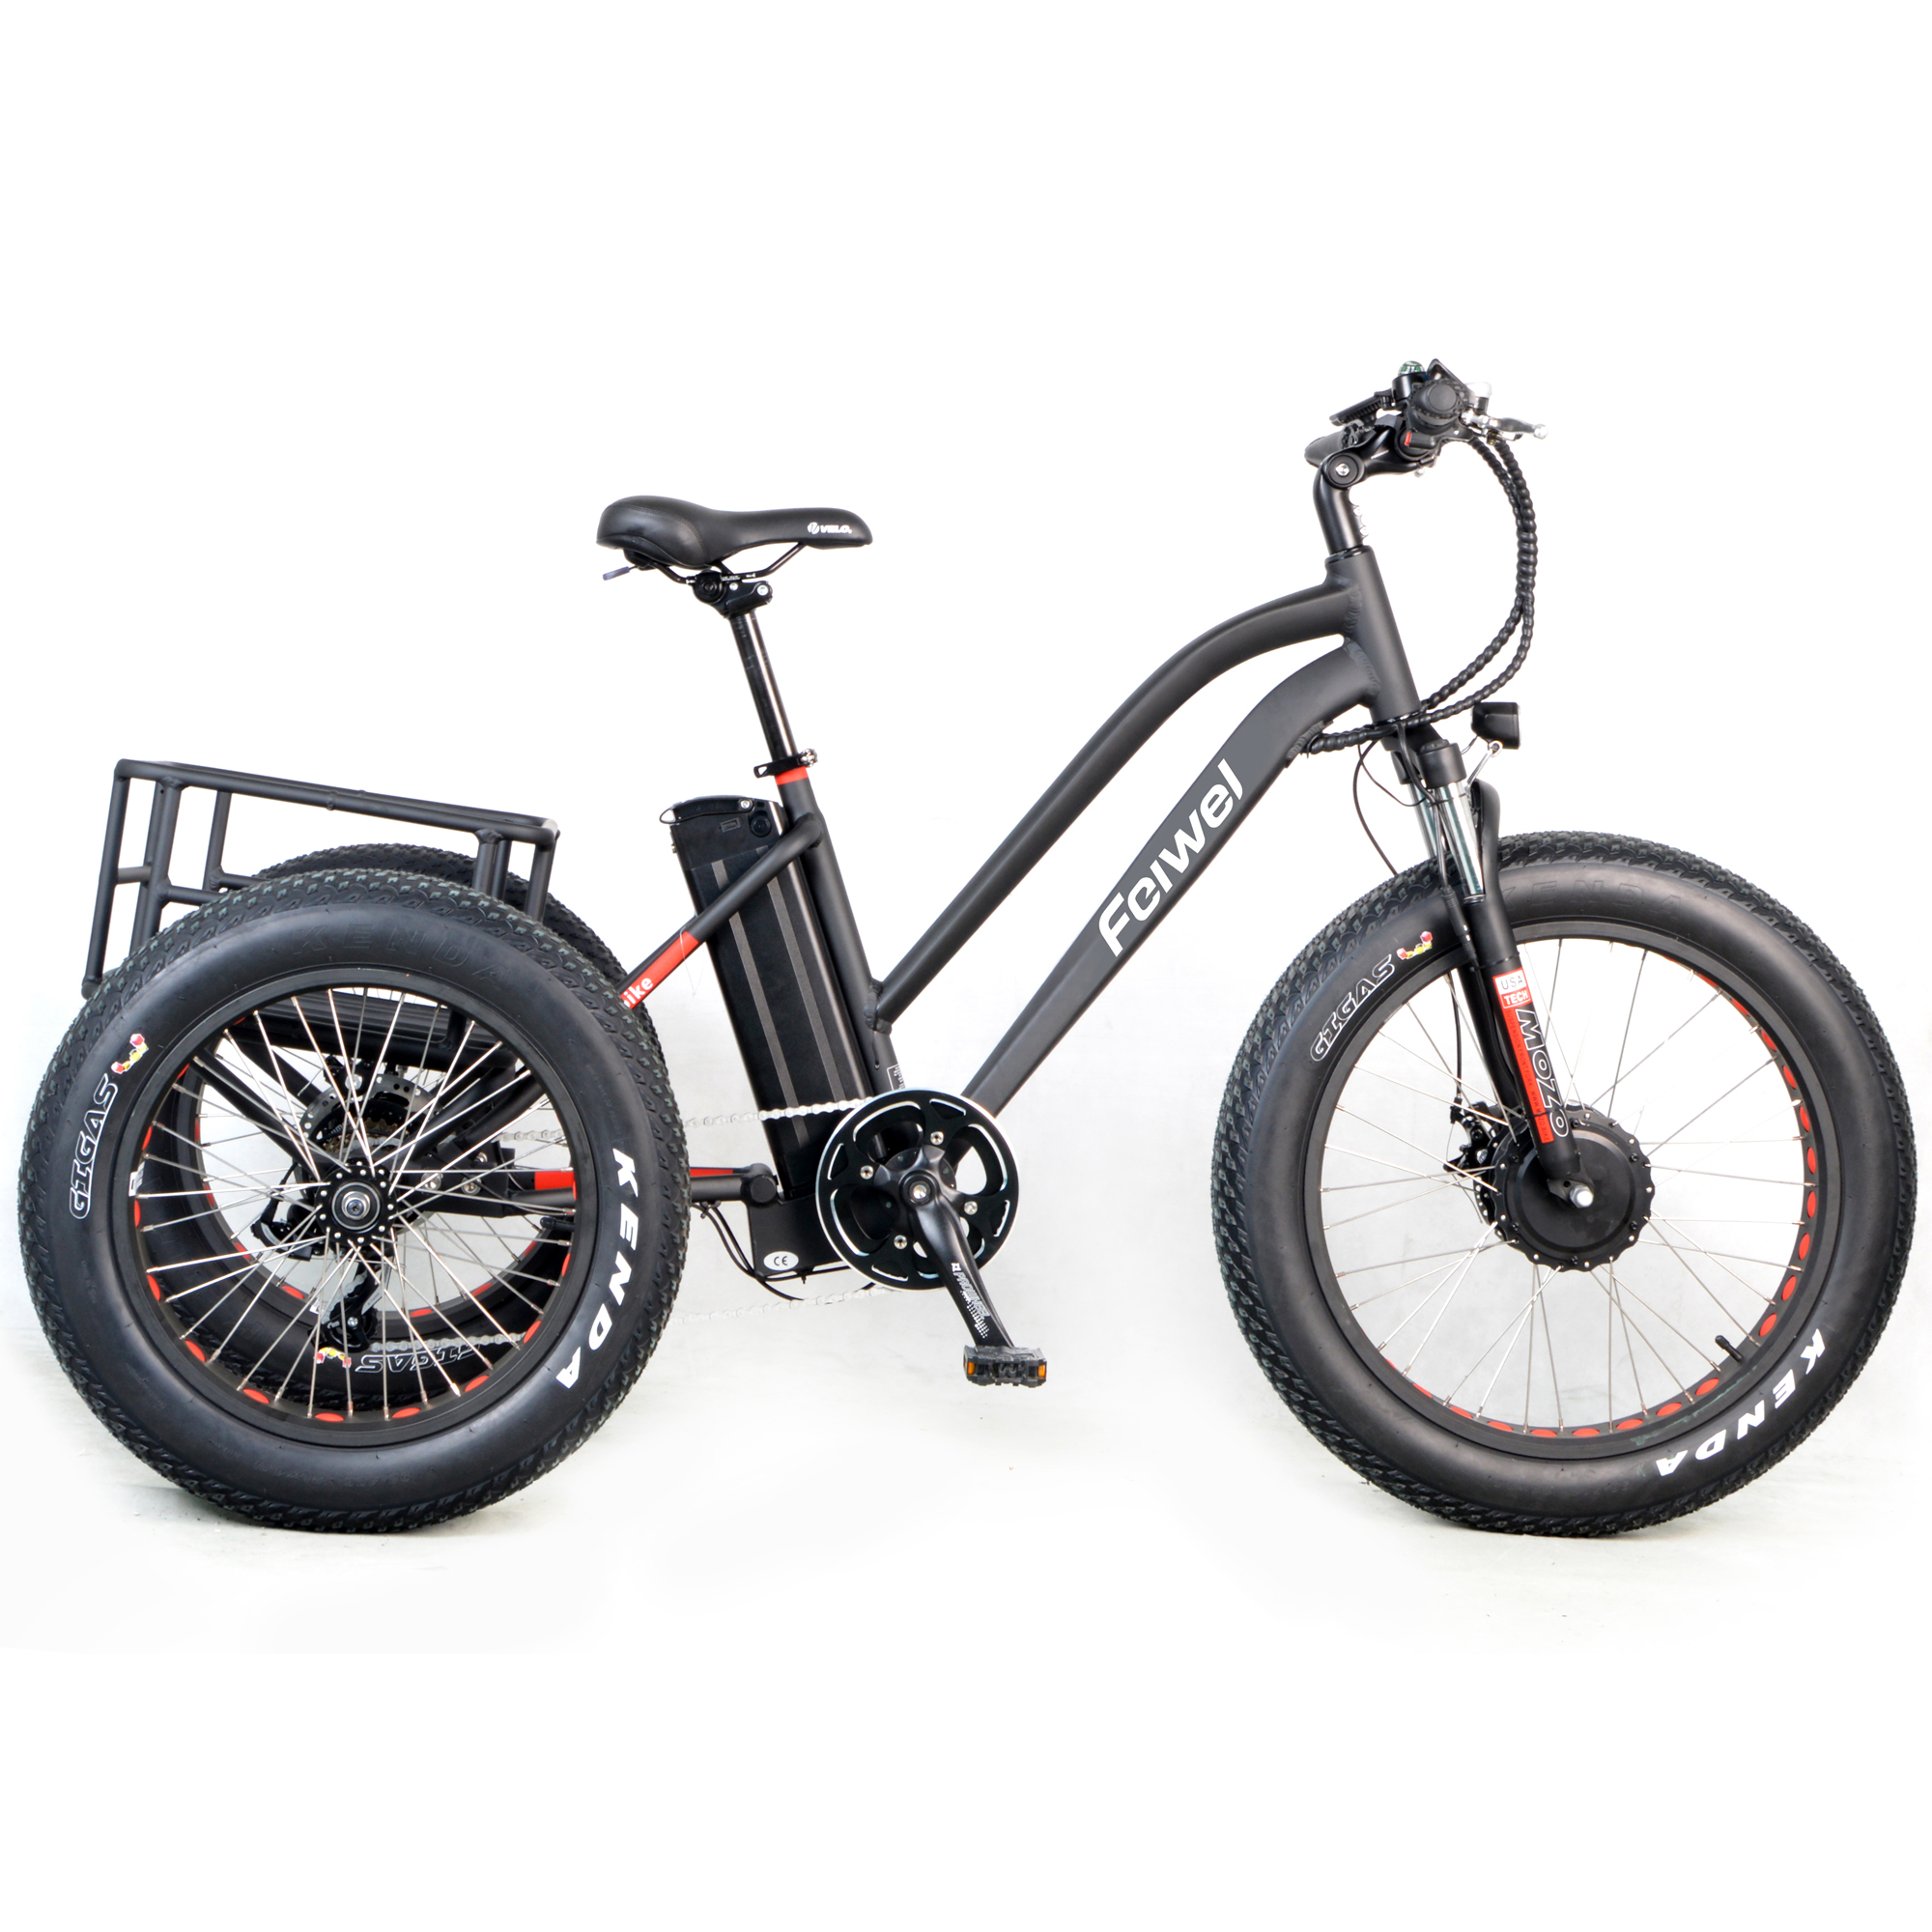 48v 750w Electric Bike 3 Wheel Fat Bicycle E